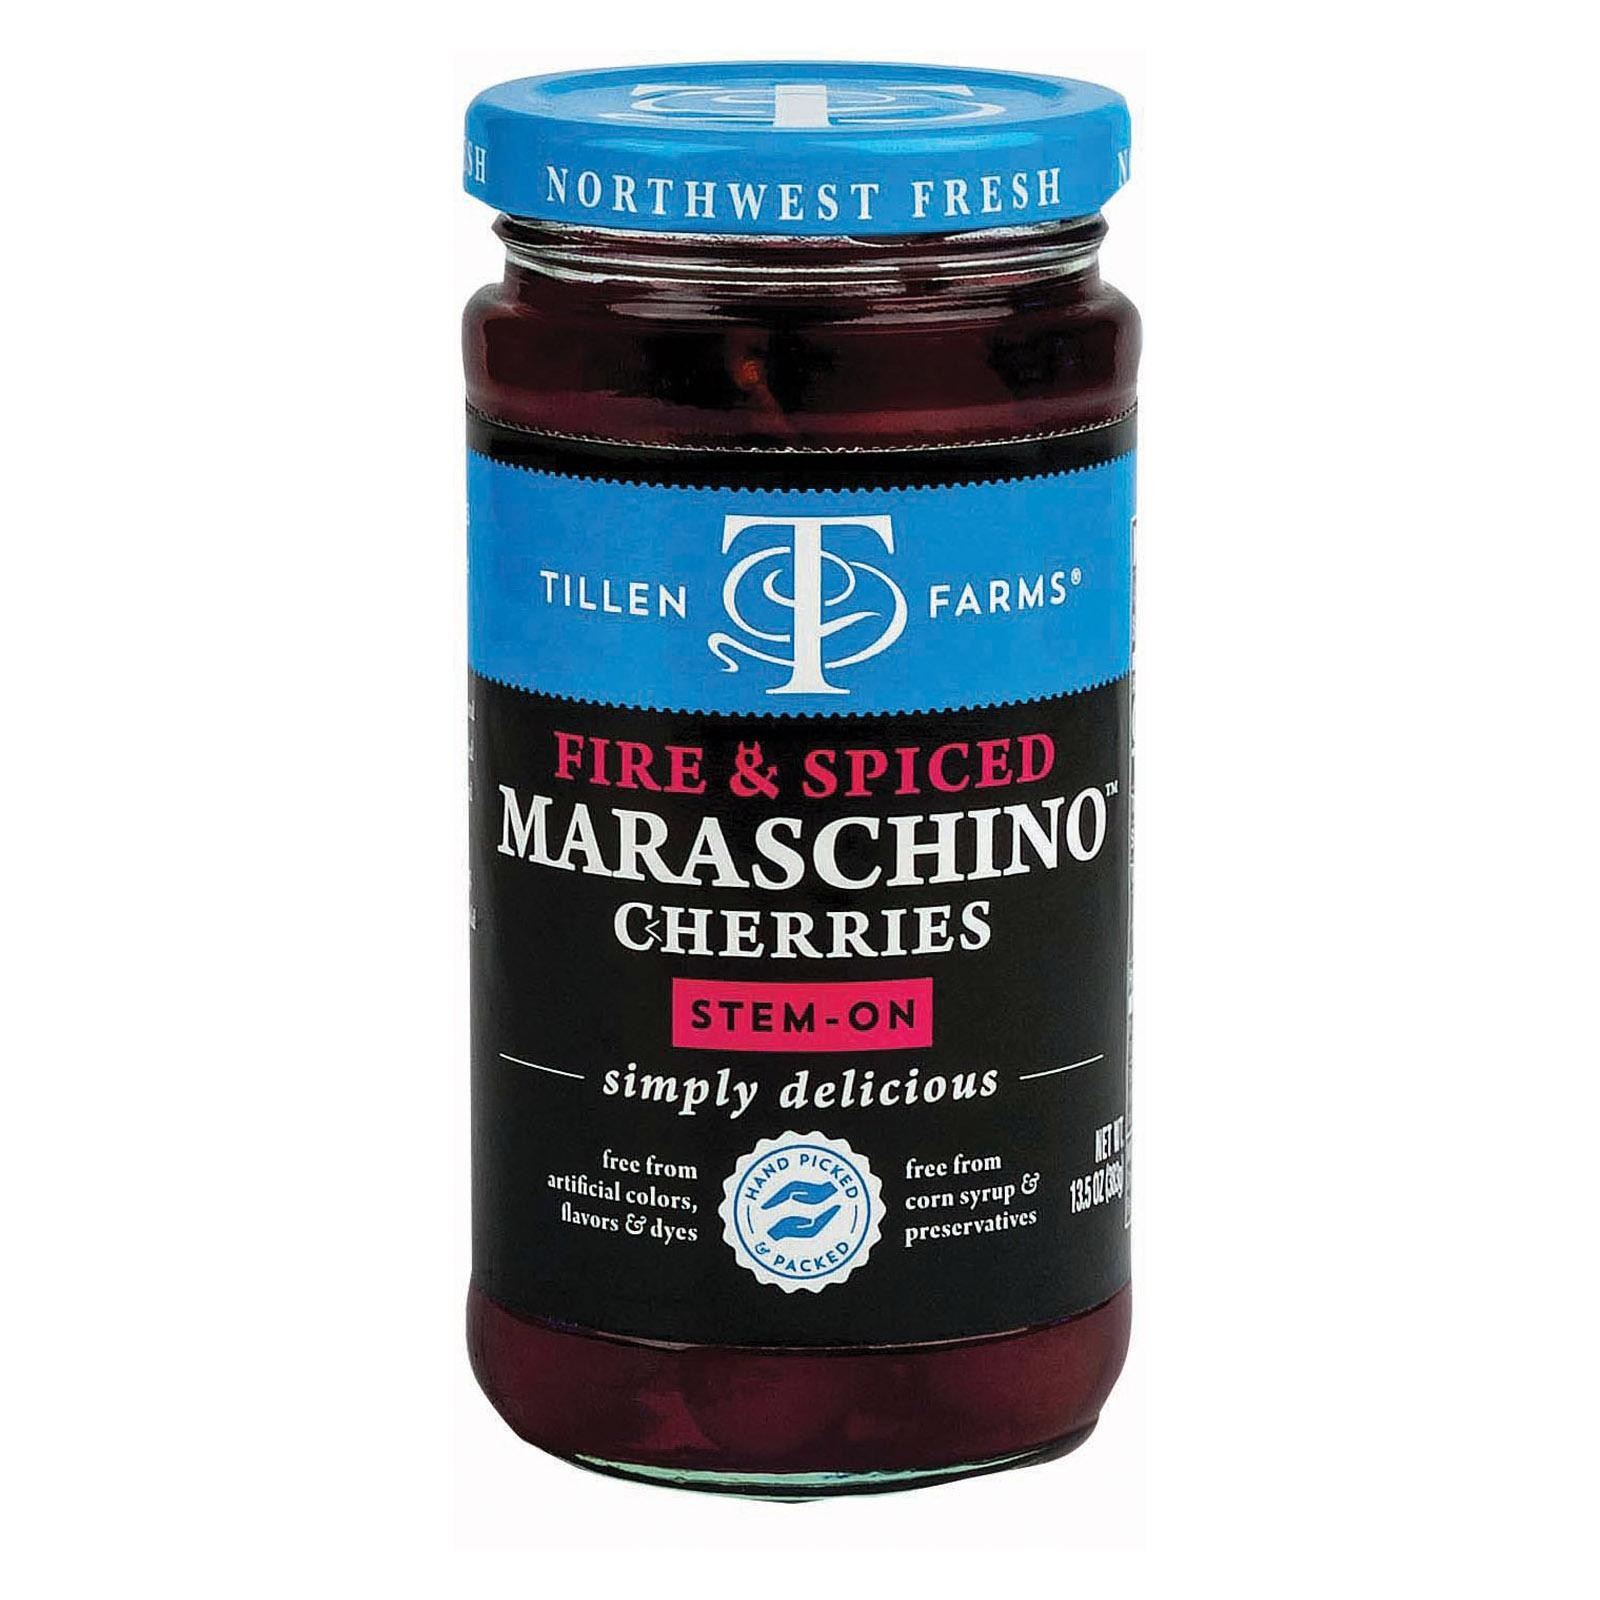 Tillen Farms Cherries - Maraschino - Spiced - pack of 6 - 13.5 Oz